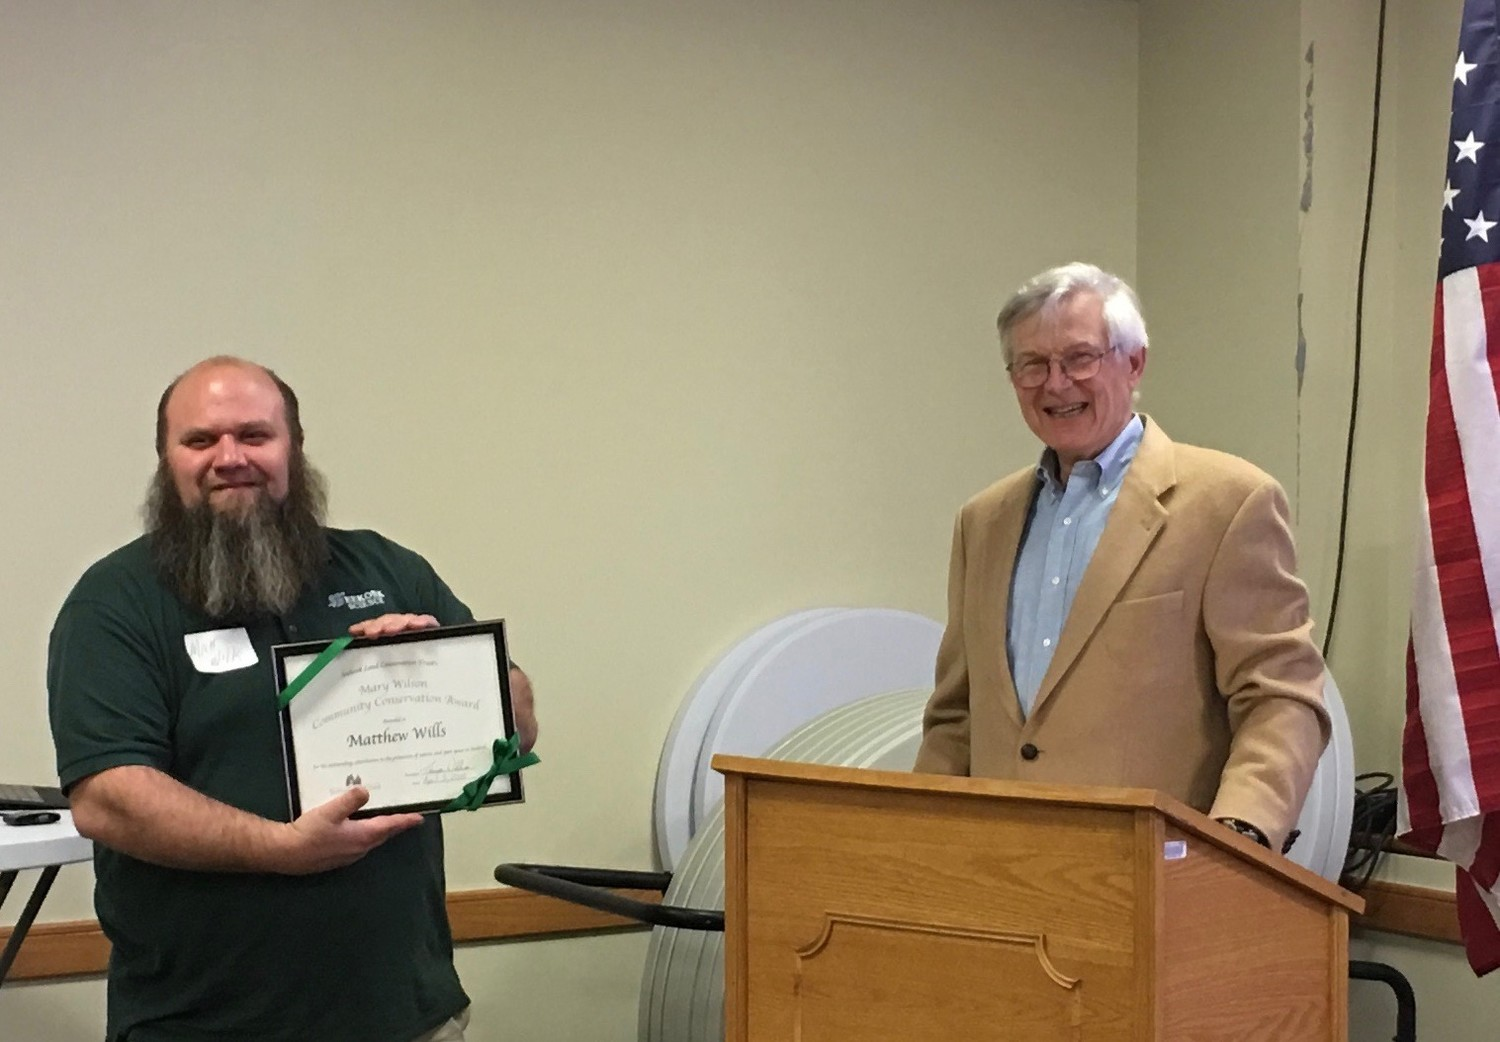 Matthew Wills of Seekonk High School was awarded the Mary Wilson Community Conservation Award by Tom Webb, President of the Seekonk Conservation Land Trust at their annual meeting April 3, 2018.